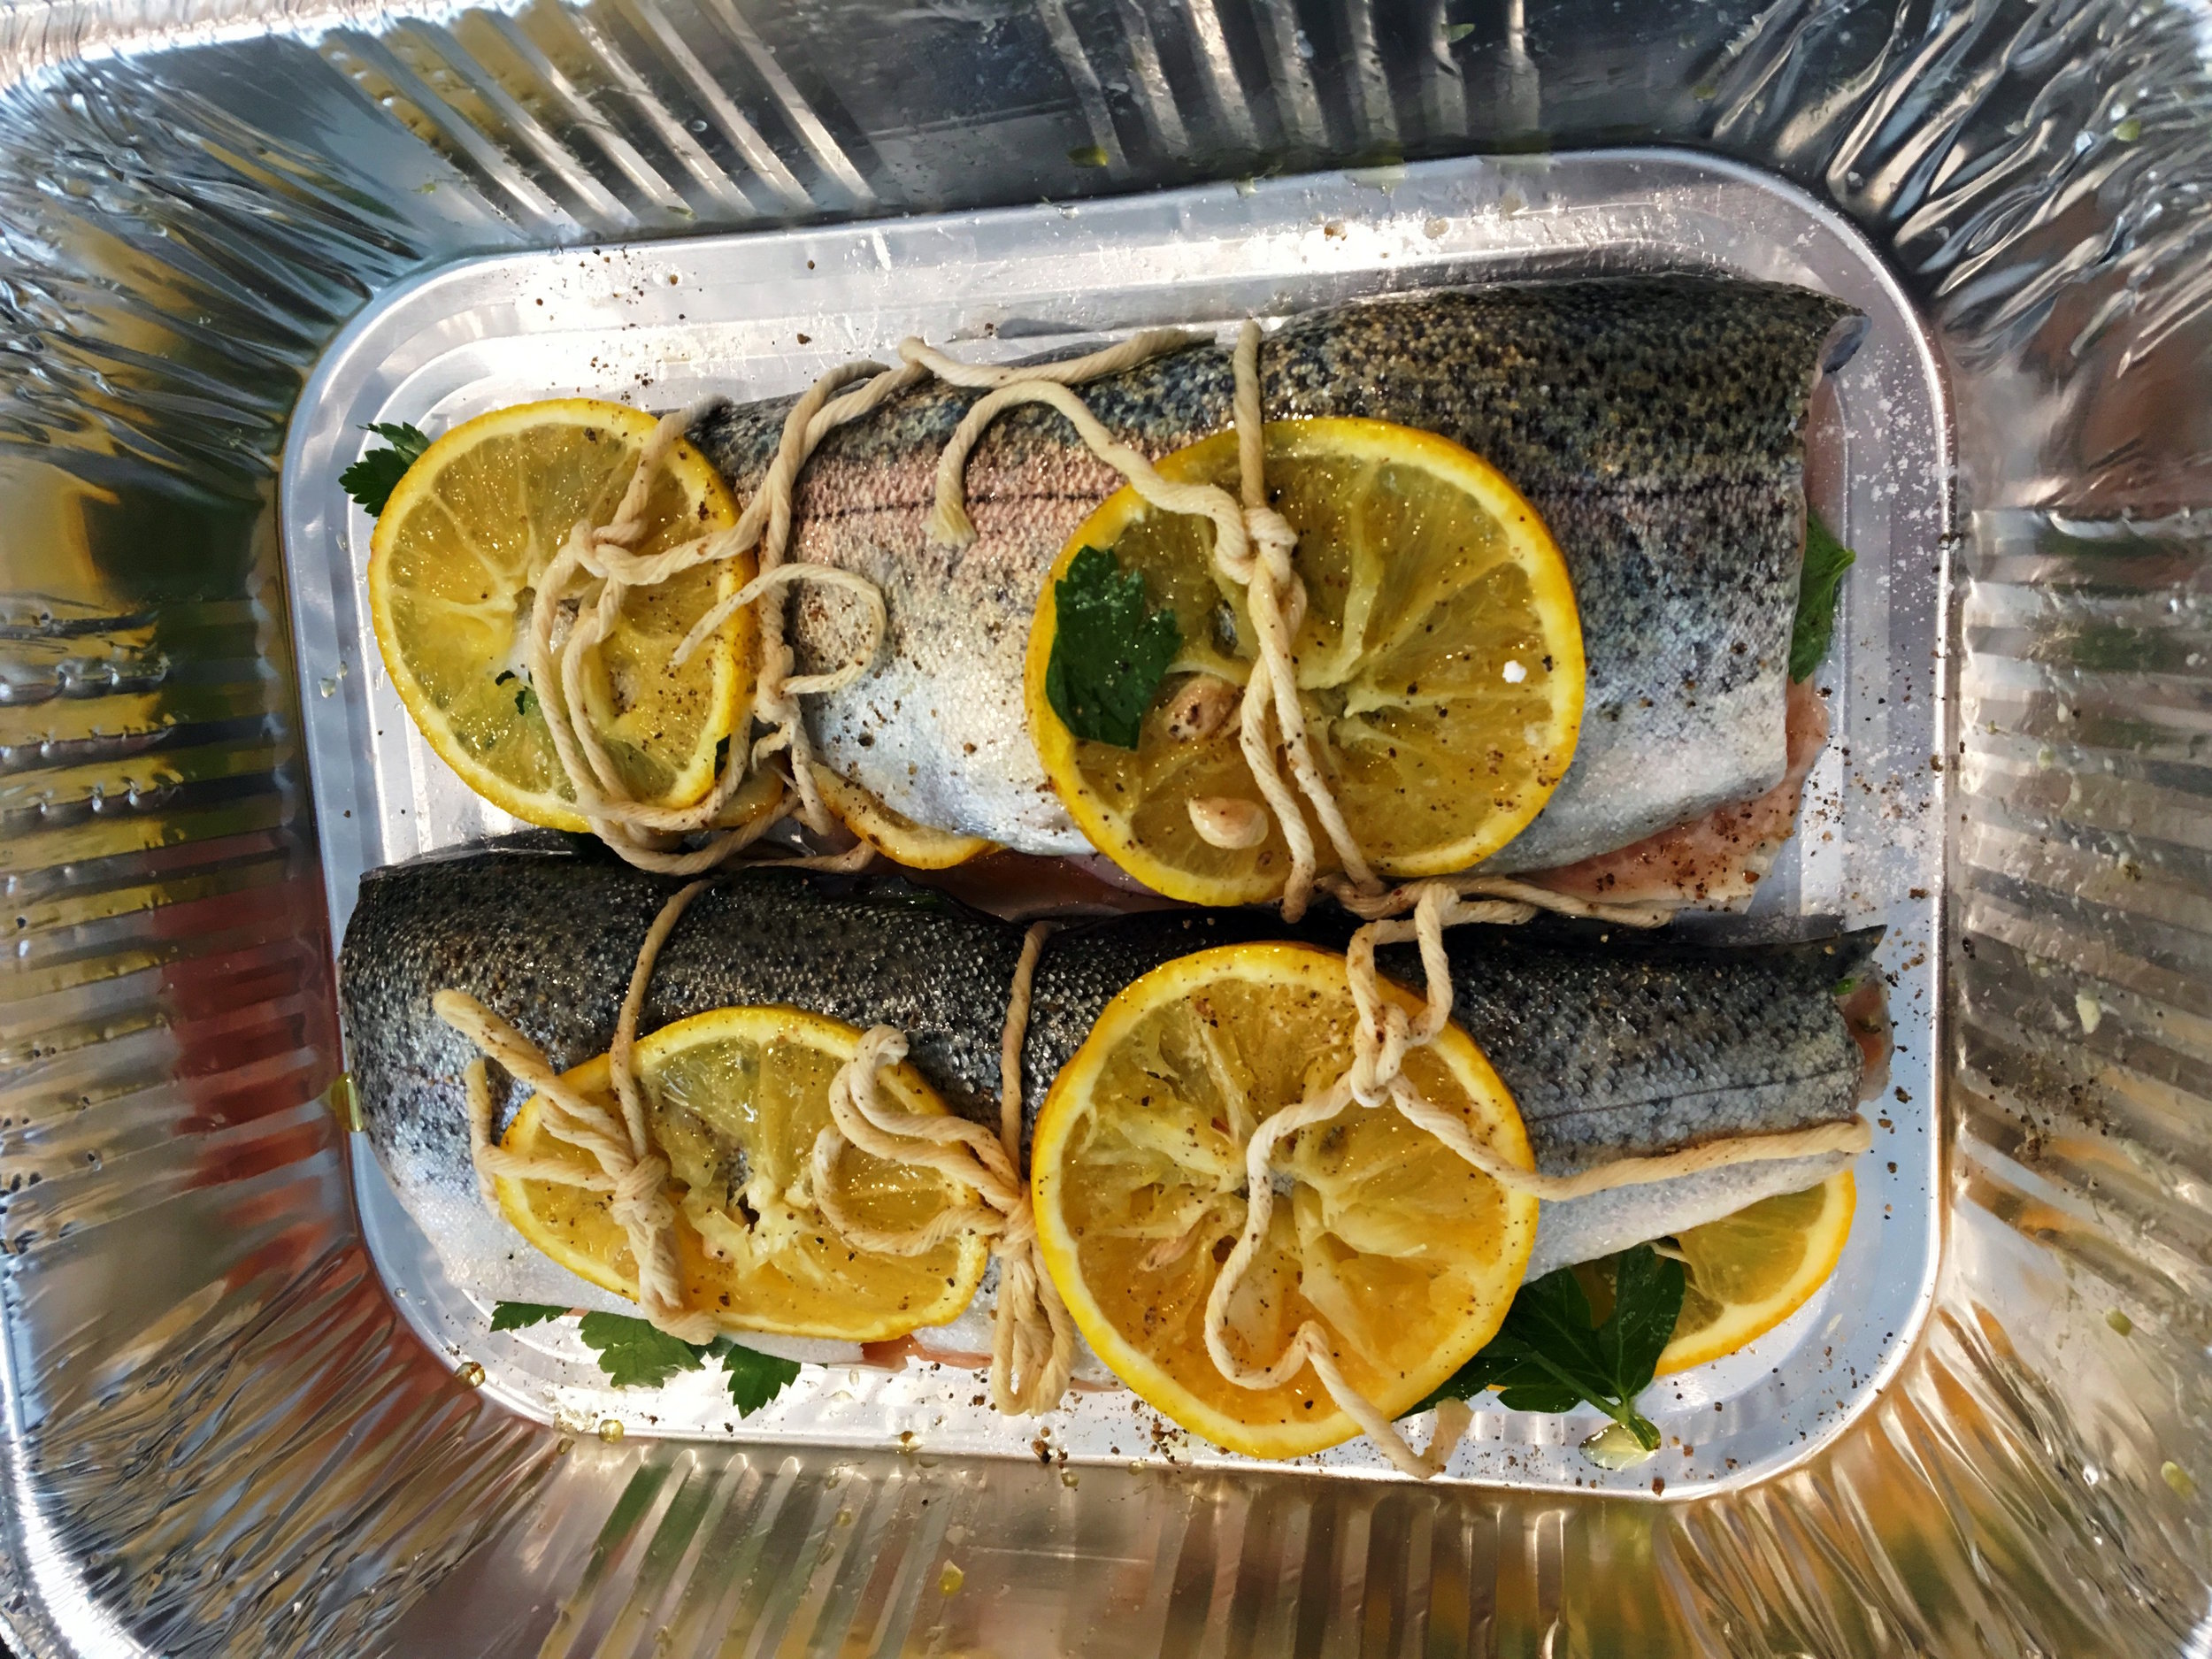 The trout, as uncooked and tied.